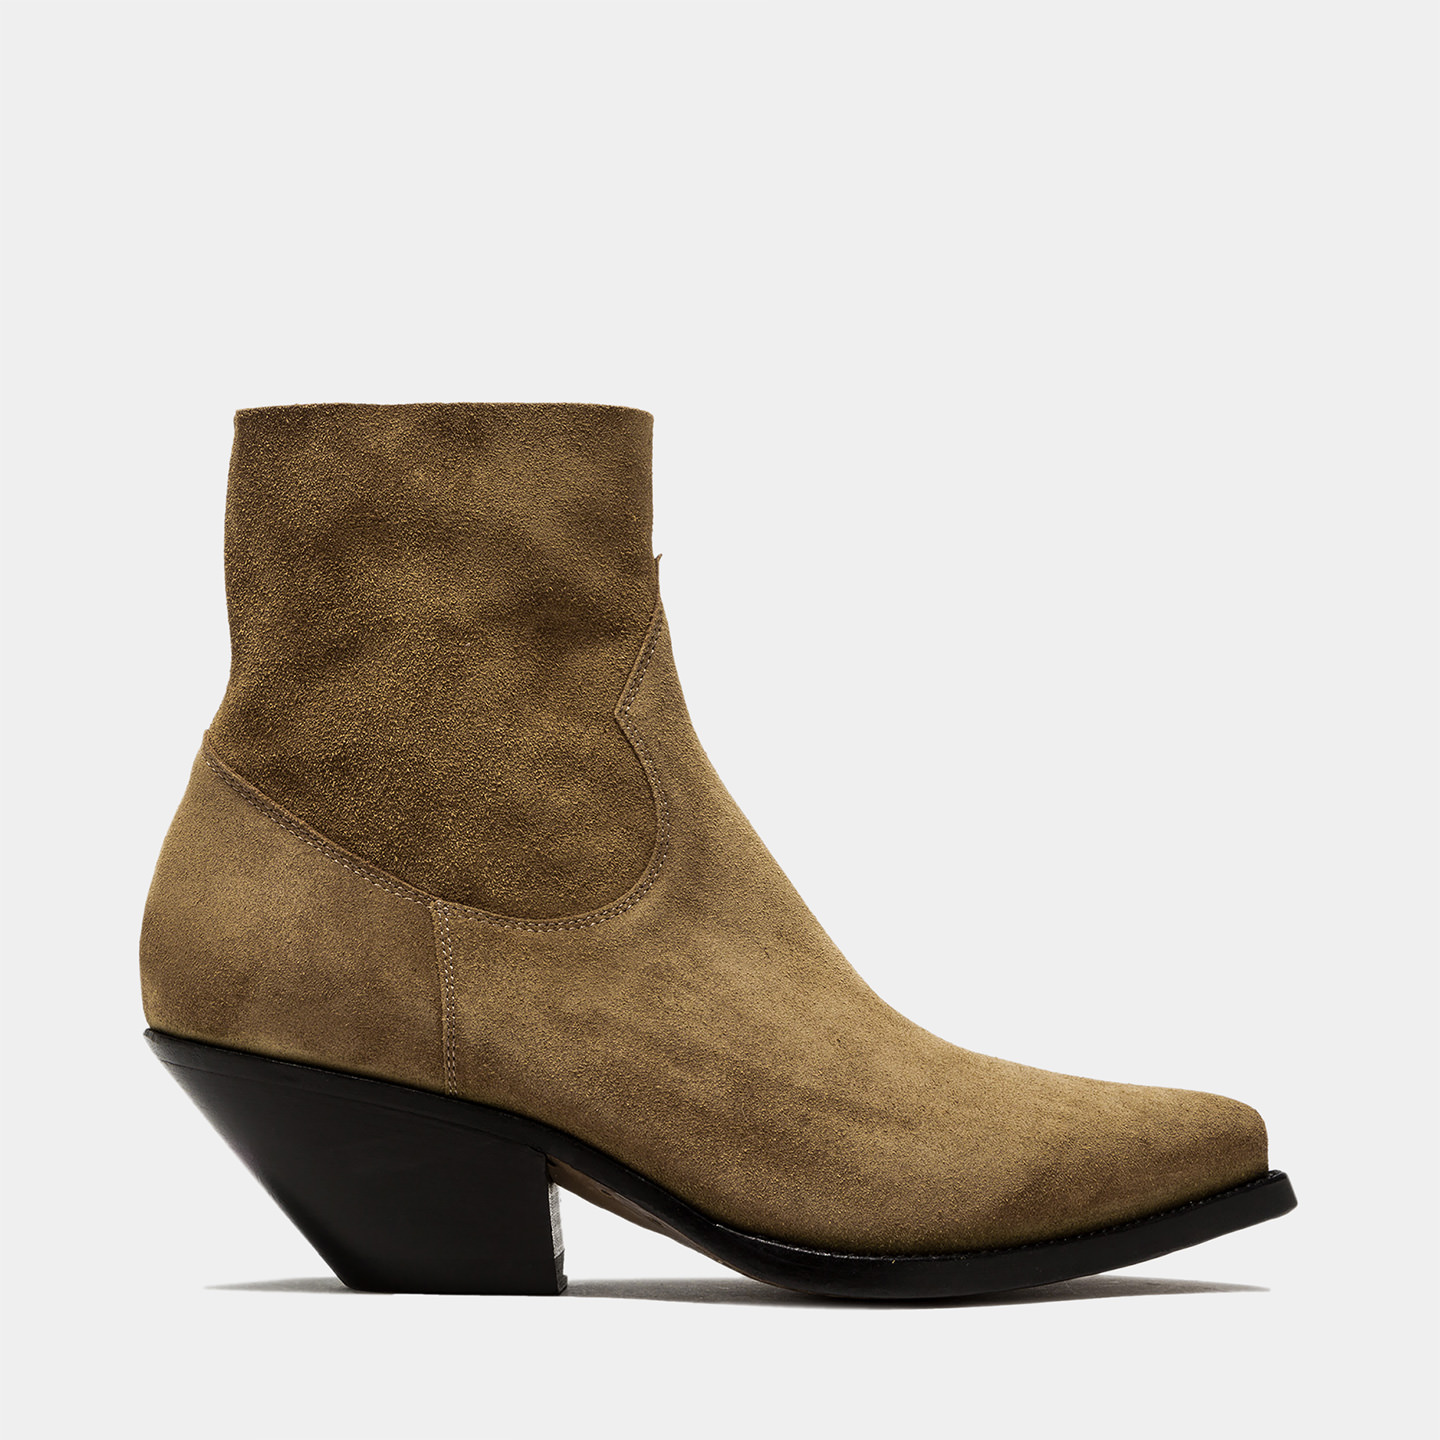 BUTTERO: STIVALE ELISE TEXANO BASSO IN SUEDE PLANTATION